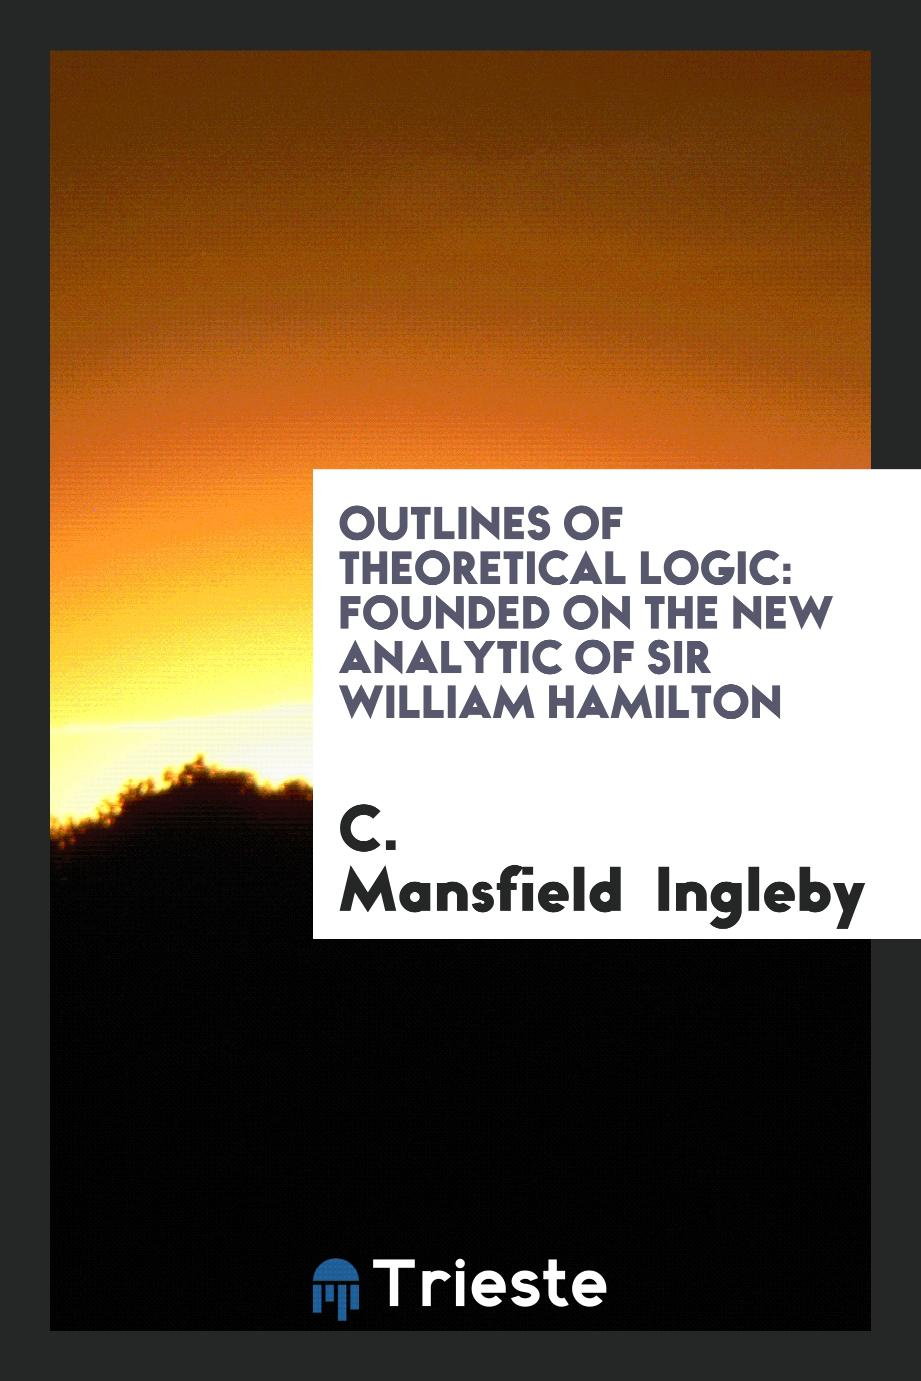 Outlines of Theoretical Logic: Founded on the New Analytic of Sir William Hamilton